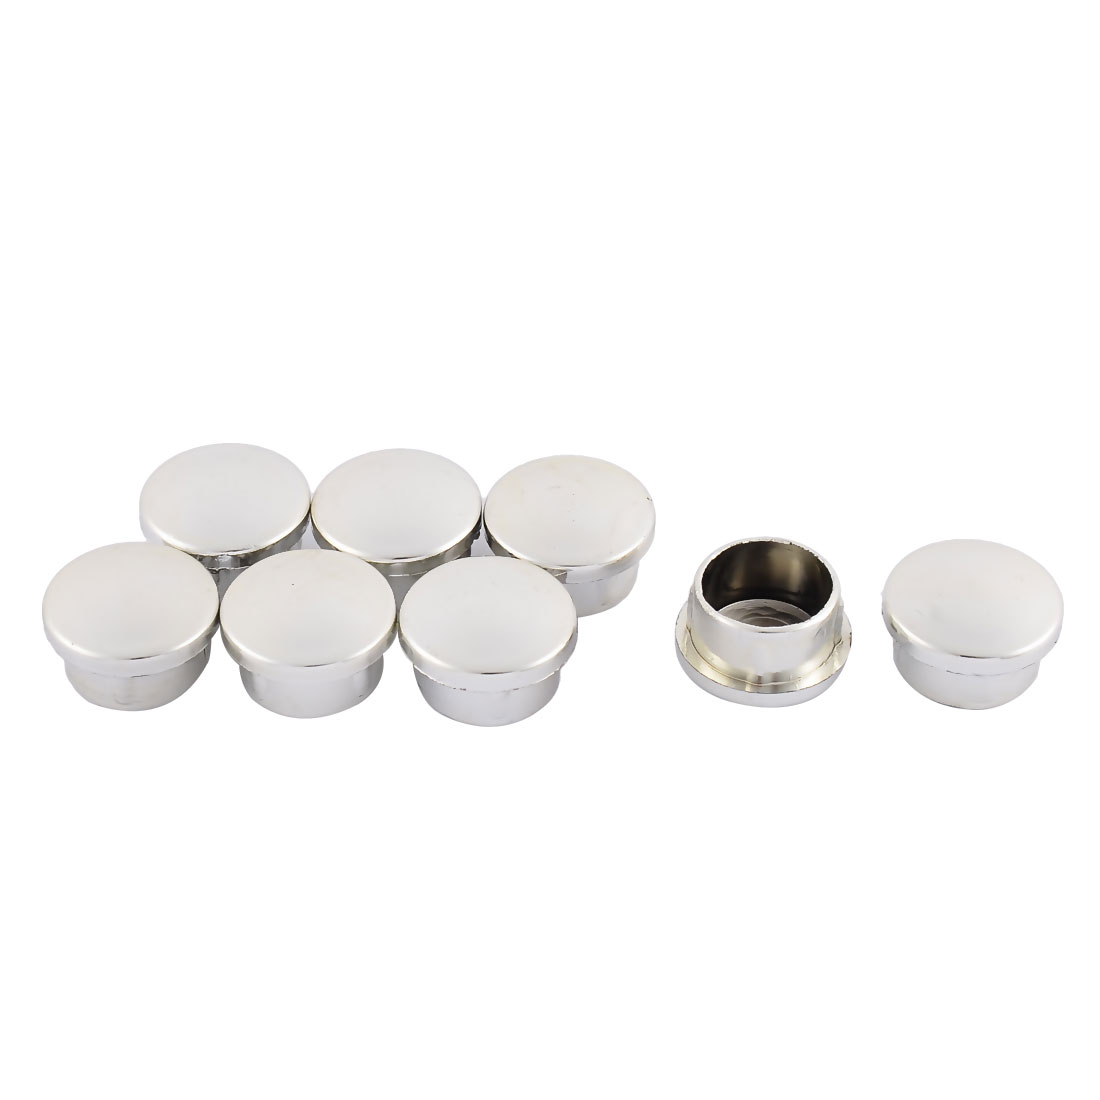 Home Plastic Round Flush Mount Cable Connector Hole Stoppers Covers Silver Tone 19mm 8pcs